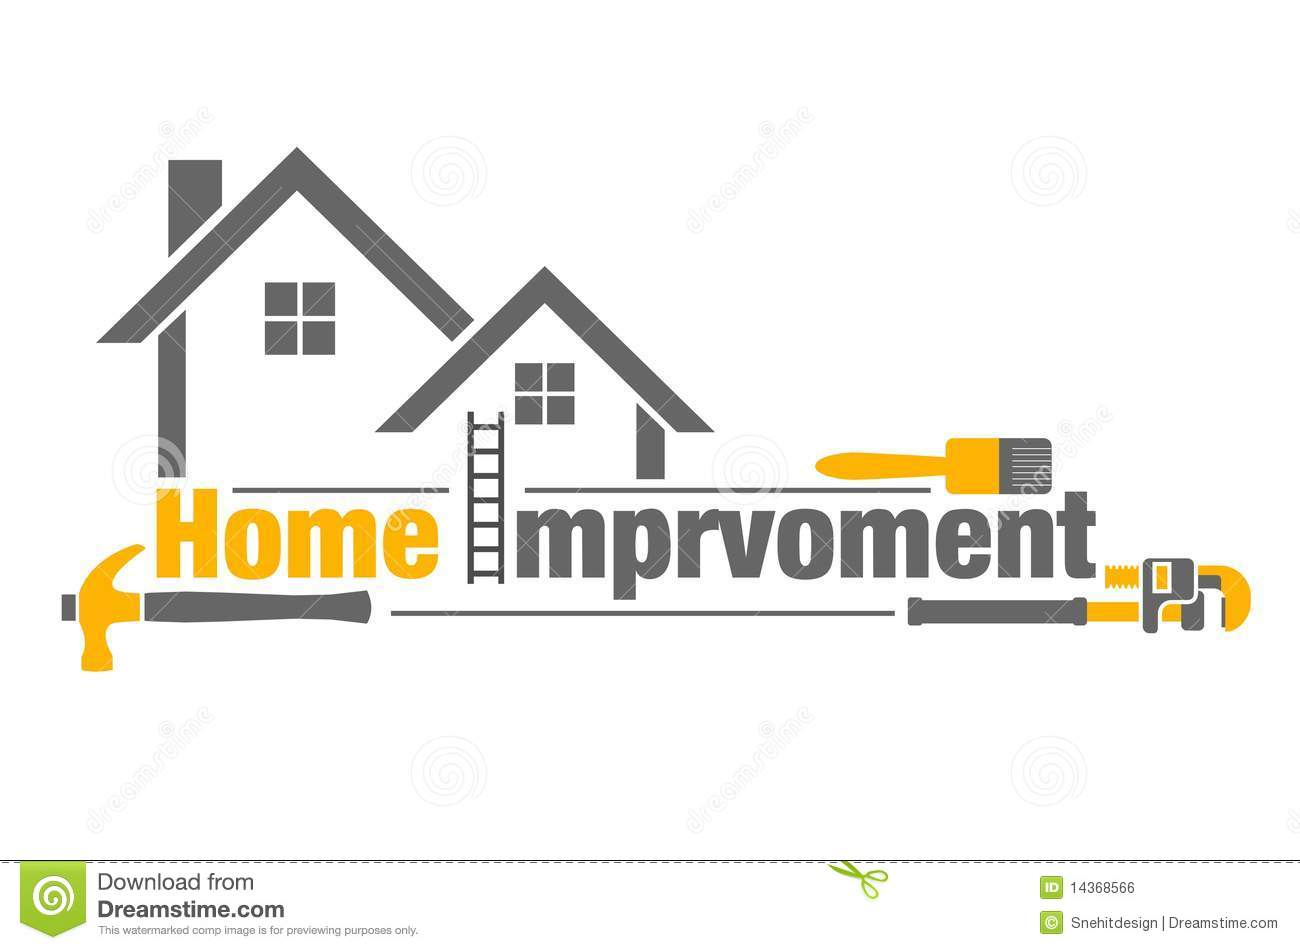 Home Improvement Icon Royalty Free Stock Image.